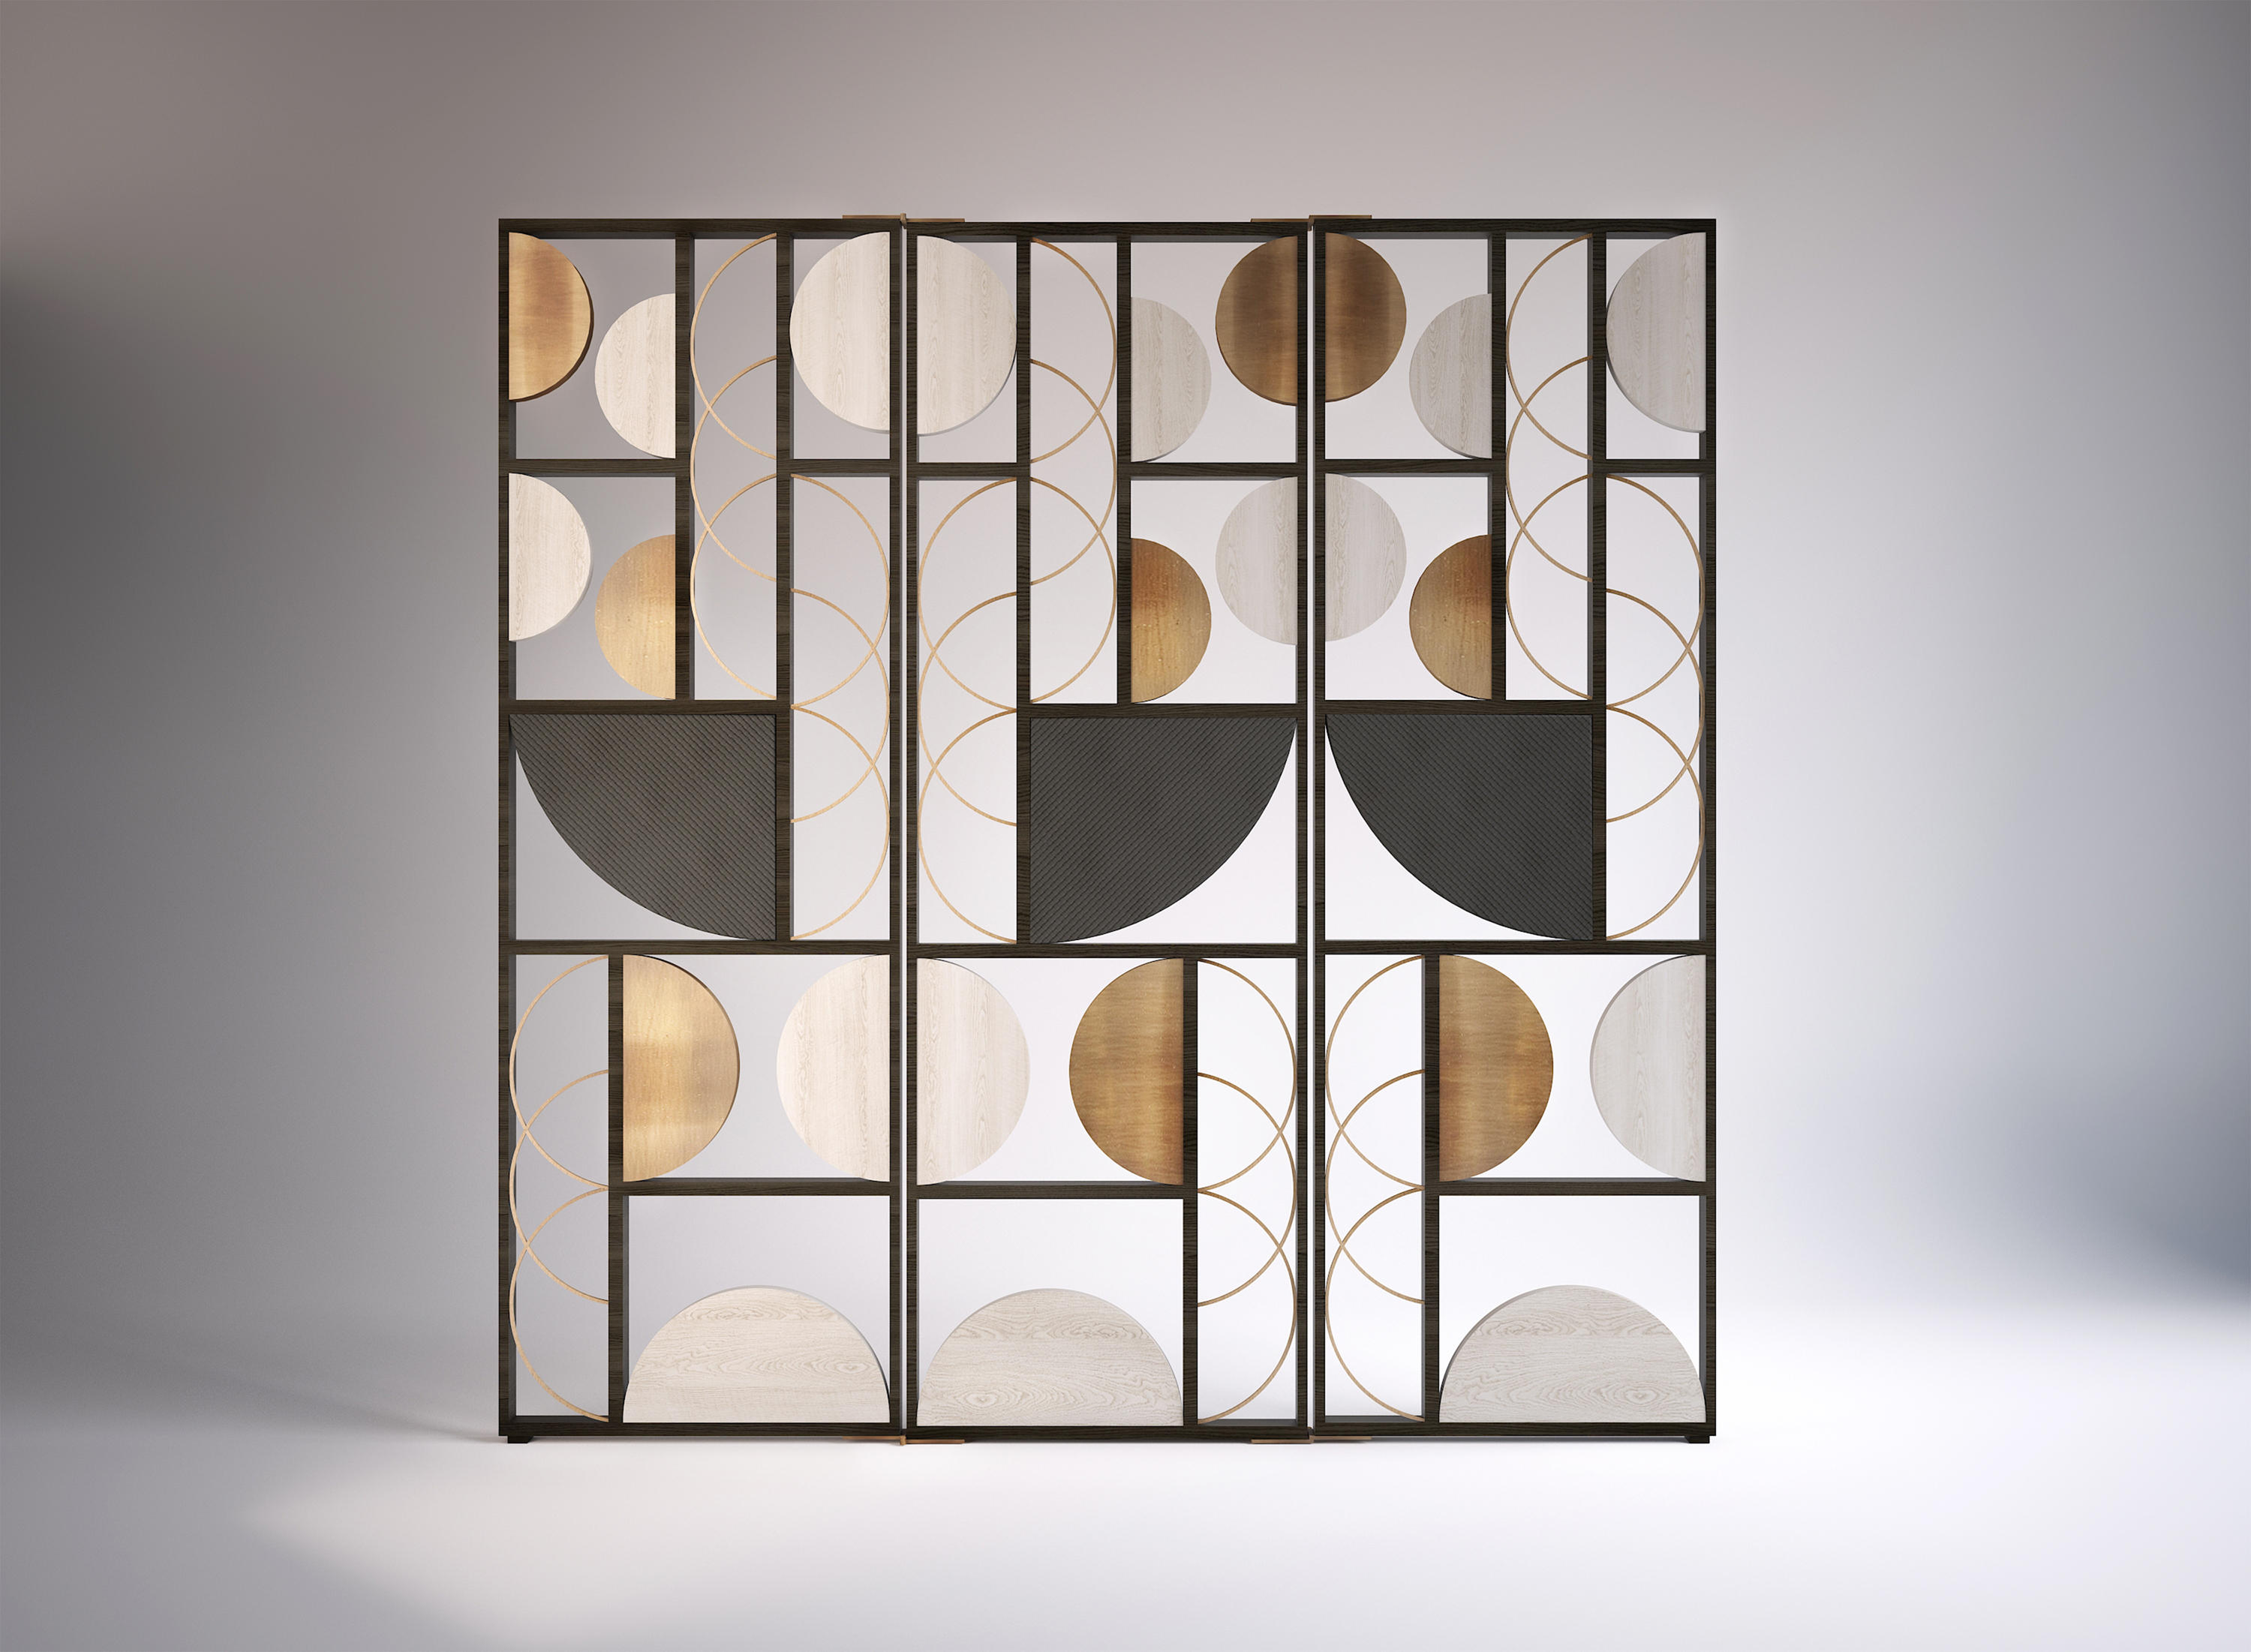 screen tiffany screens from rossato architonic. Black Bedroom Furniture Sets. Home Design Ideas